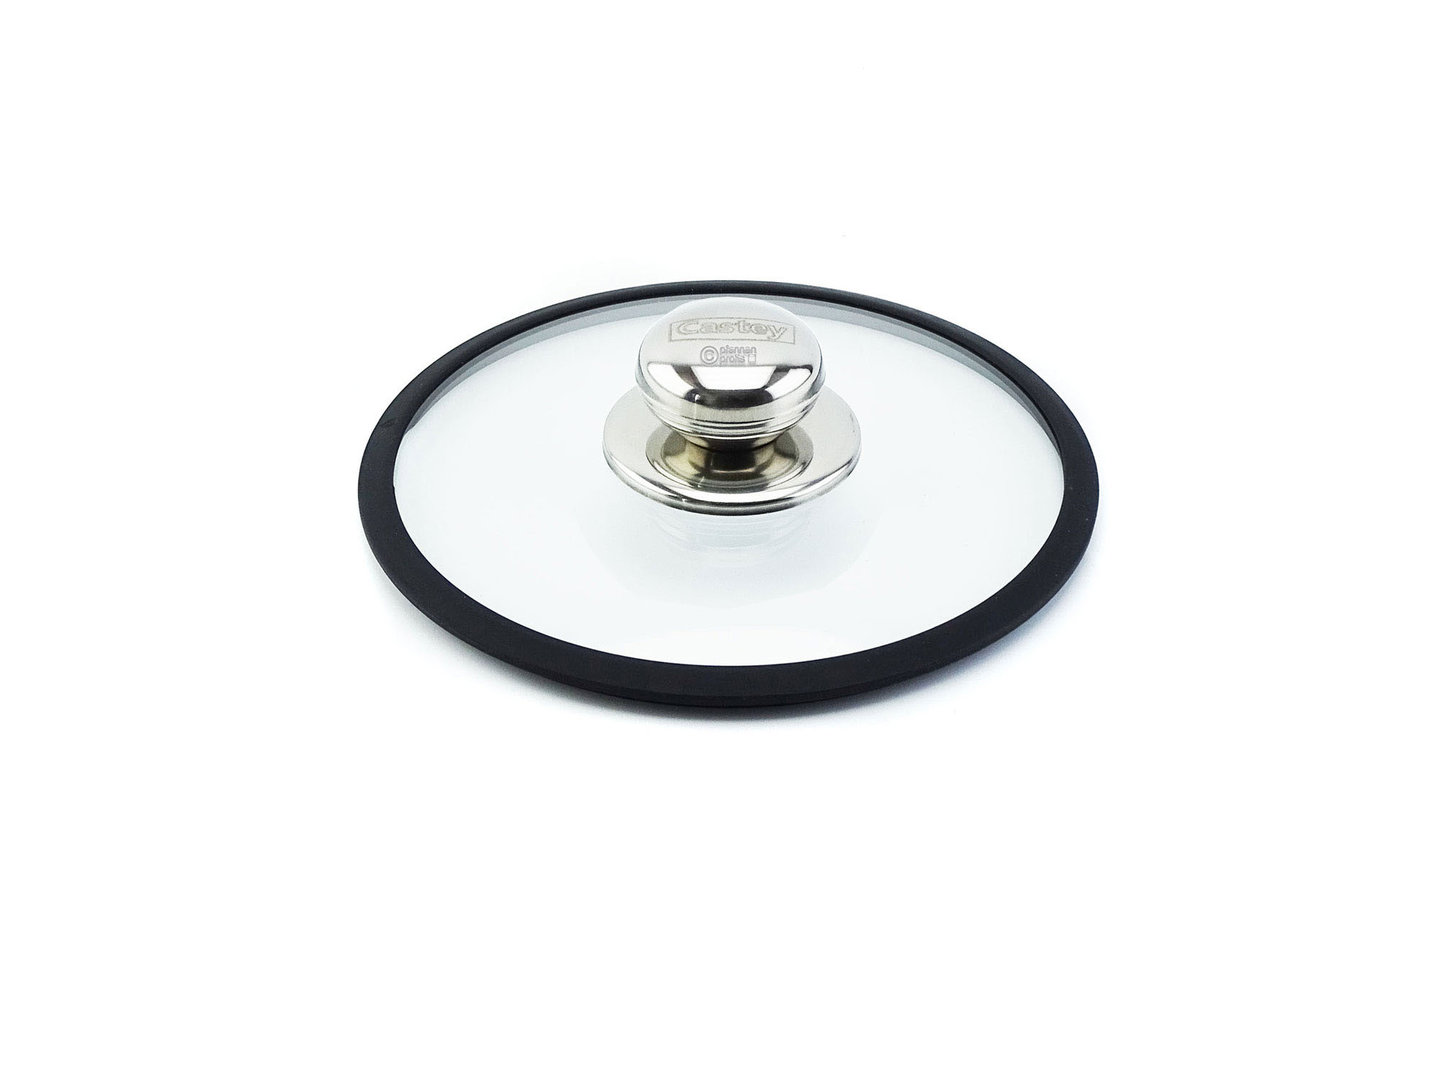 CASTEY ovenproof glass lid 16 cm with silicone rim